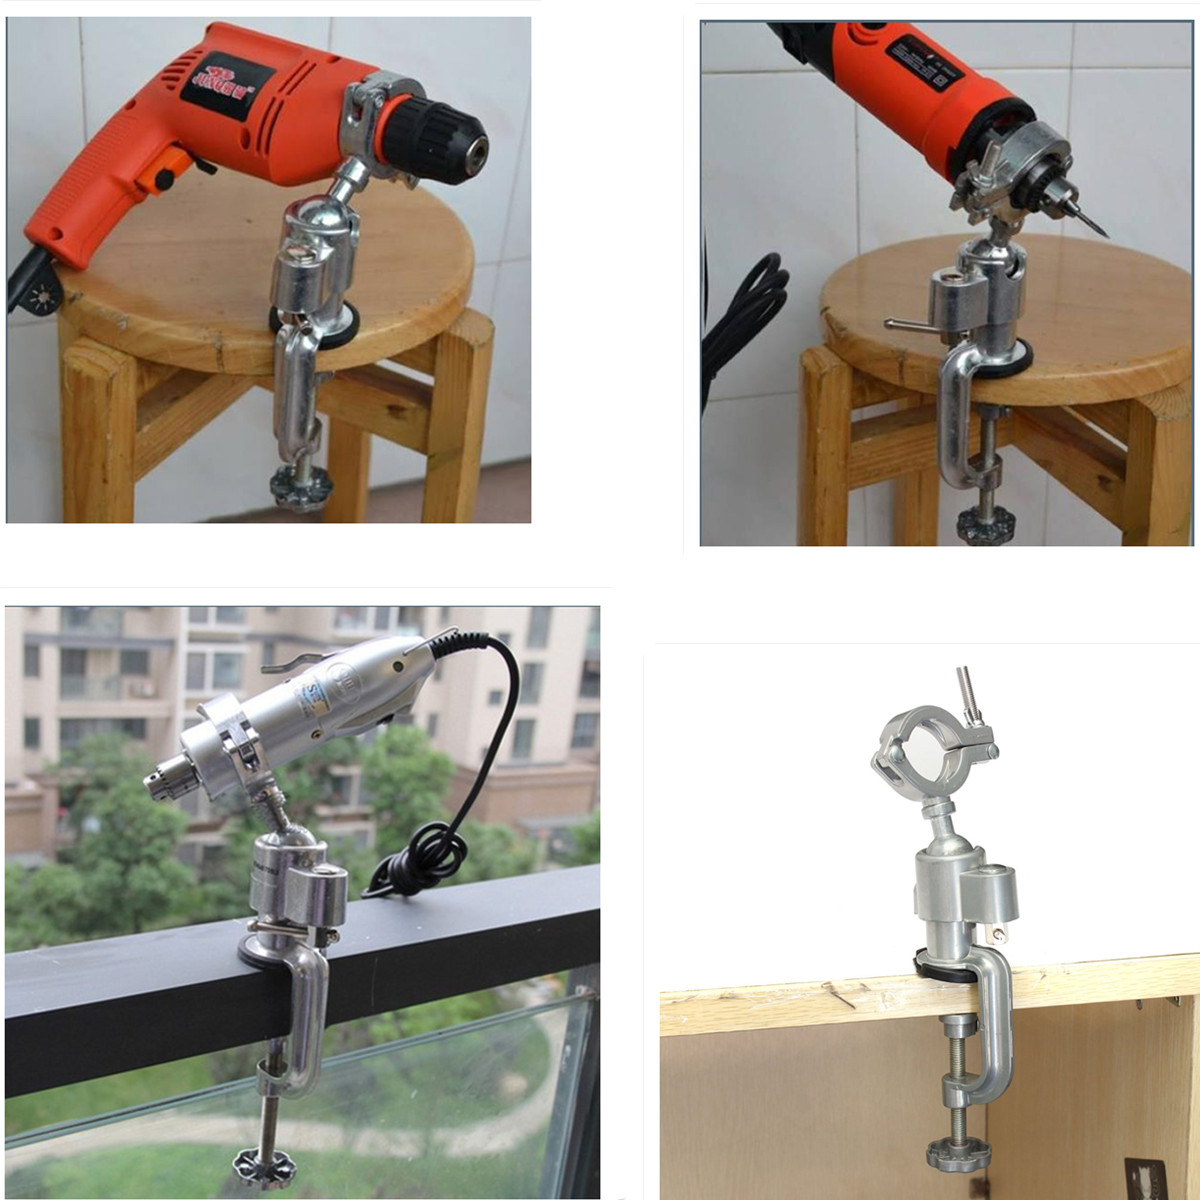 Universal Clamp-on Bench Vises Grinder Accessory Electric Drill Stand Holder Electric Drill Rack Multifunctional Bracket Used